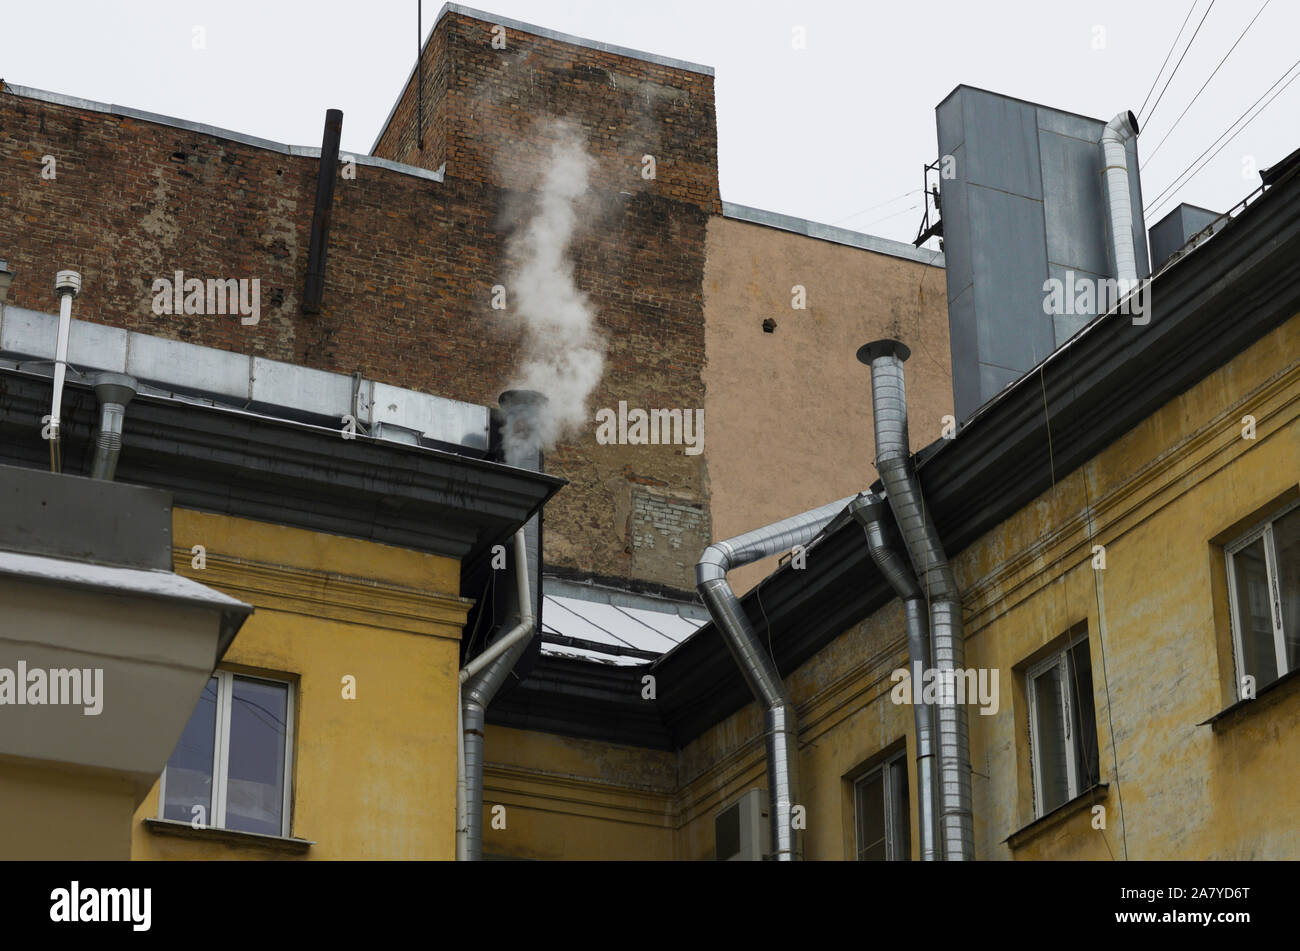 Walls of old houses with silvery pipes ventilation system with smoke over one of the pipes Stock Photo